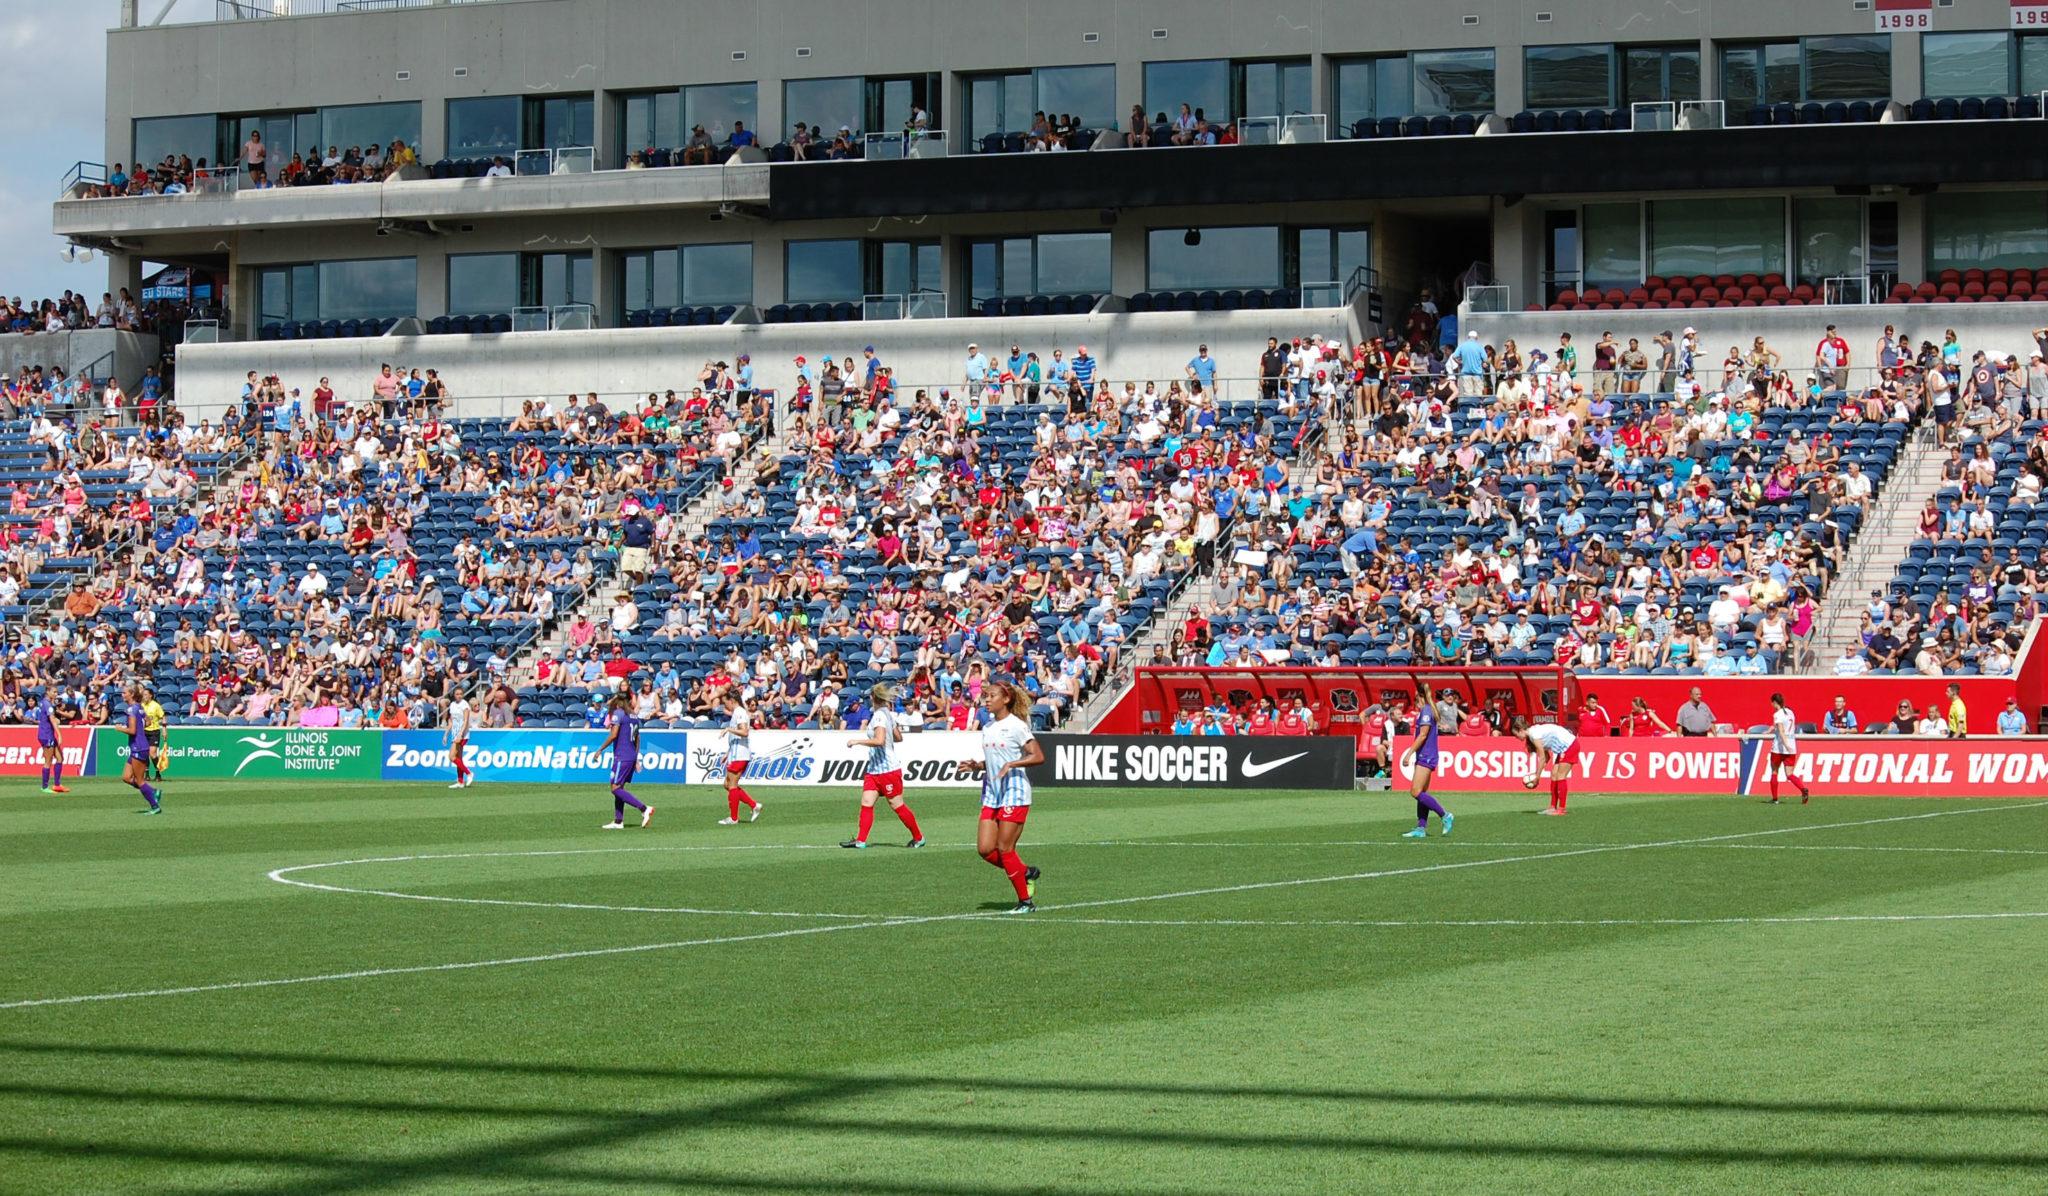 The Chicago Red Stars enjoyed a record crowd at Saturday's Game of the Week match against the Orlando Pride. (photo by John D Halloran)